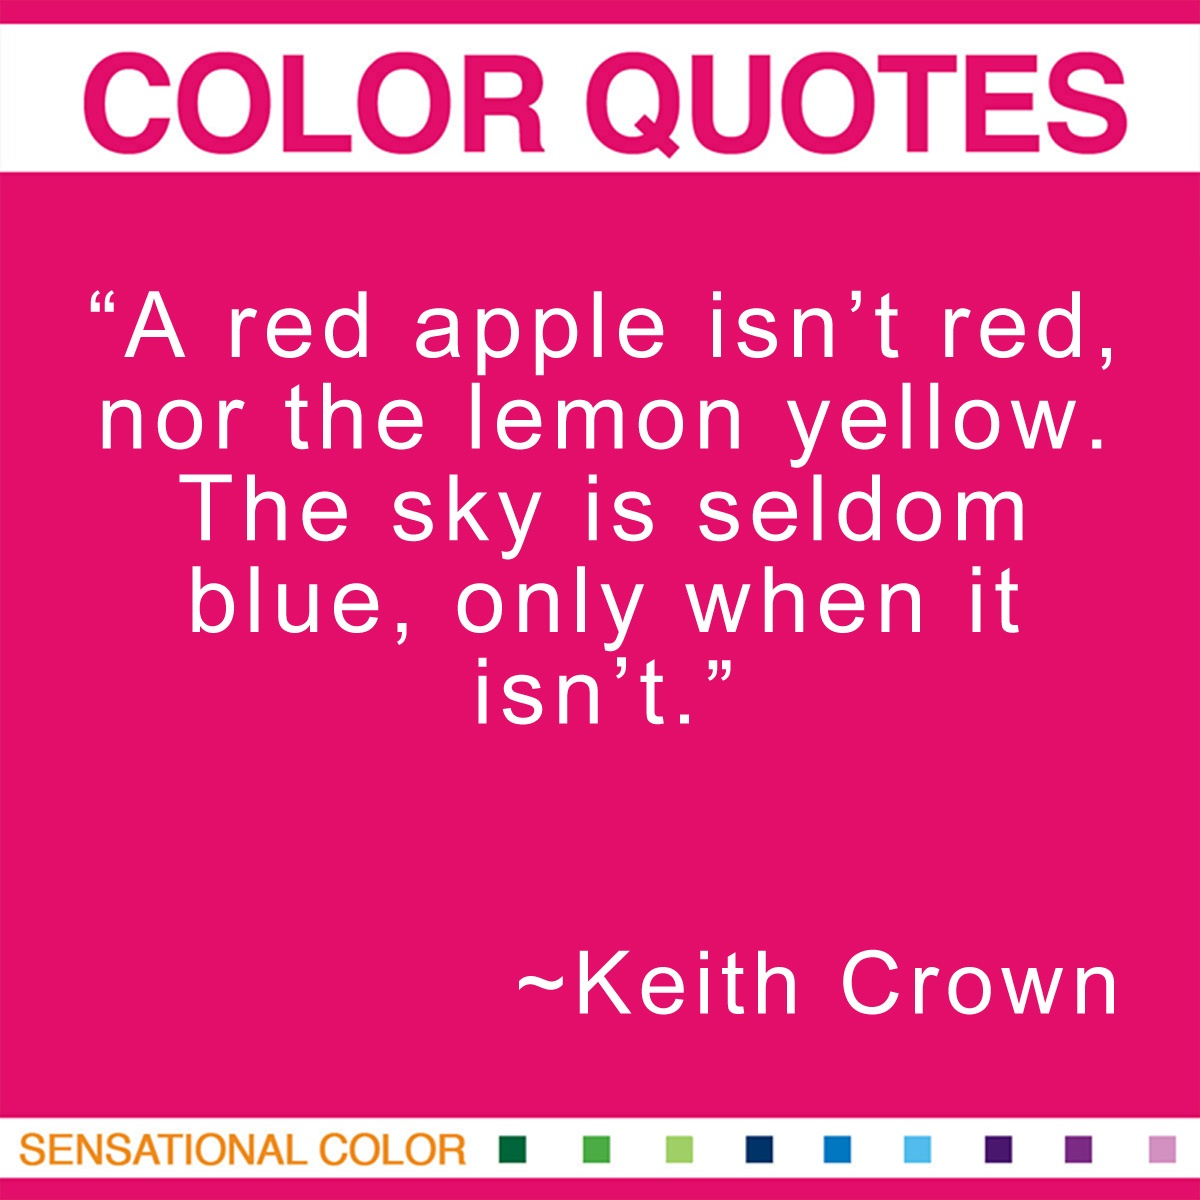 """A red apple isn't red, nor the lemon yellow. The sky is seldom blue, only when it isn't."" - Keith Crown"